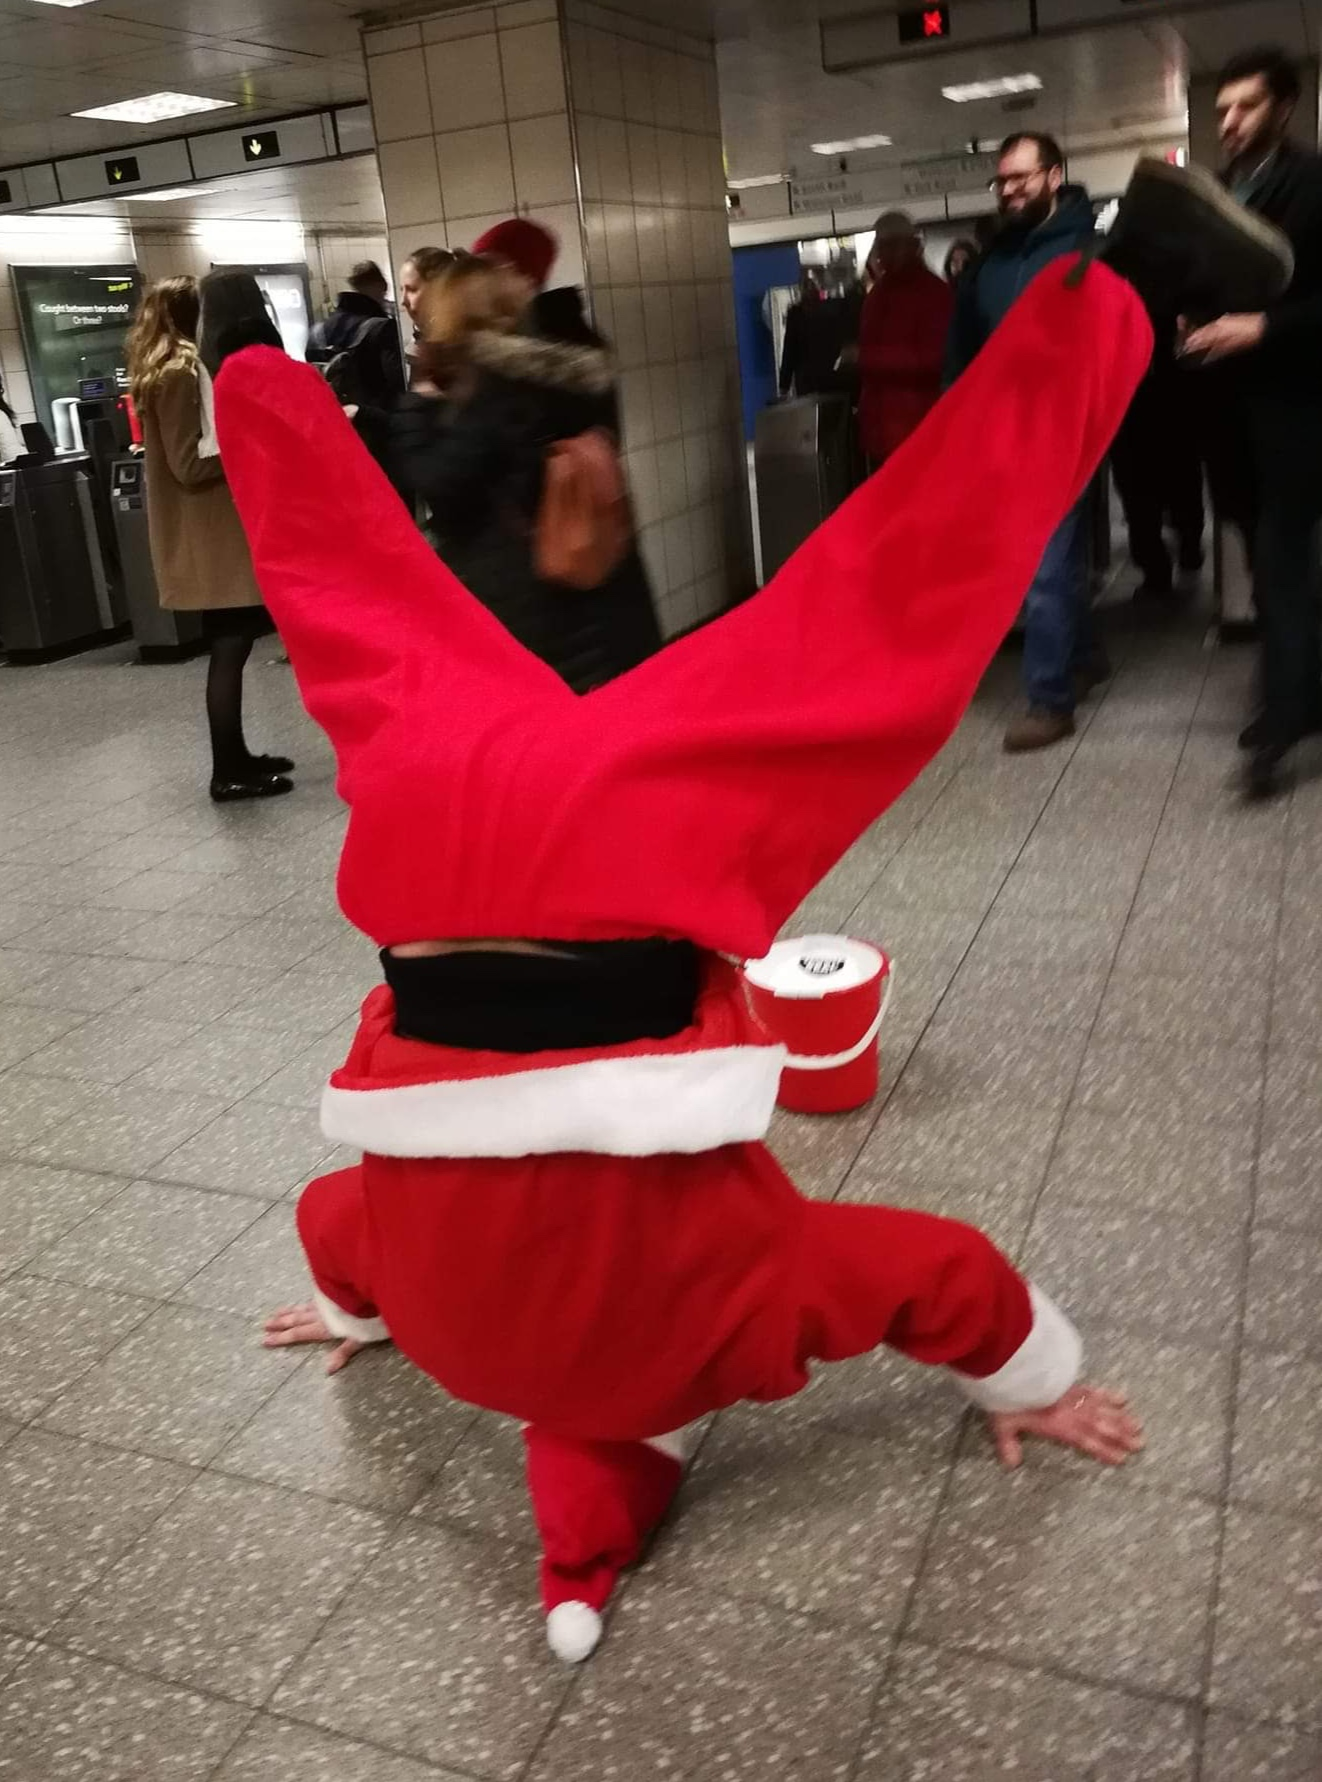 One tenor down at Waterloo Station raising money for the Red Cross.